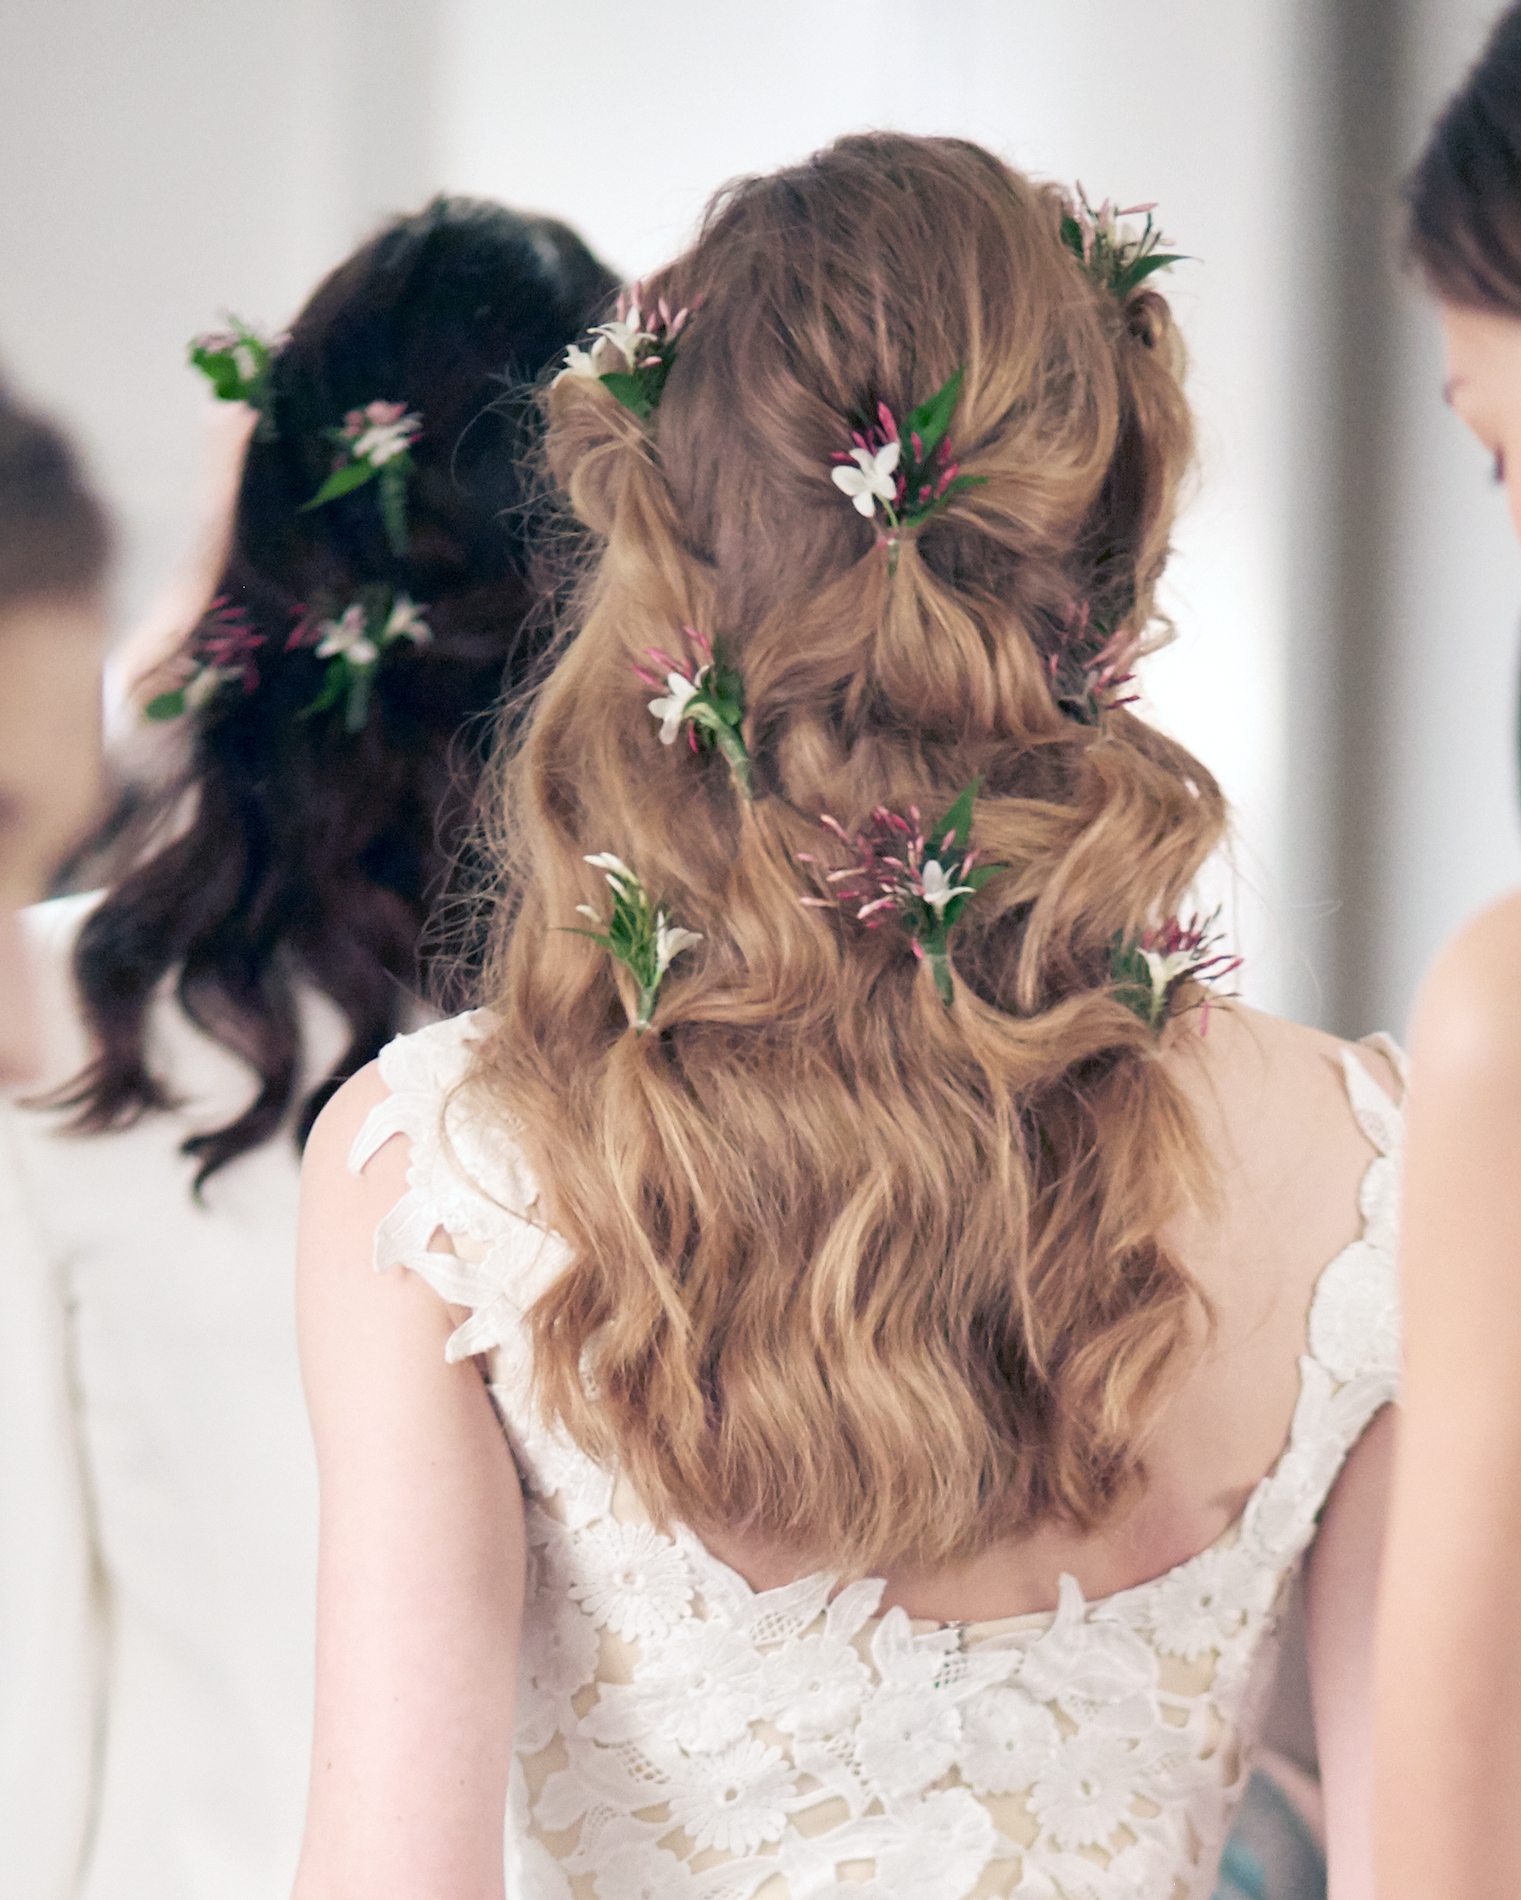 Bridal Hairstyle Tips For Your Wedding Day: 5 Wedding Hairstyle Ideas From The Spring 2016 Bridal